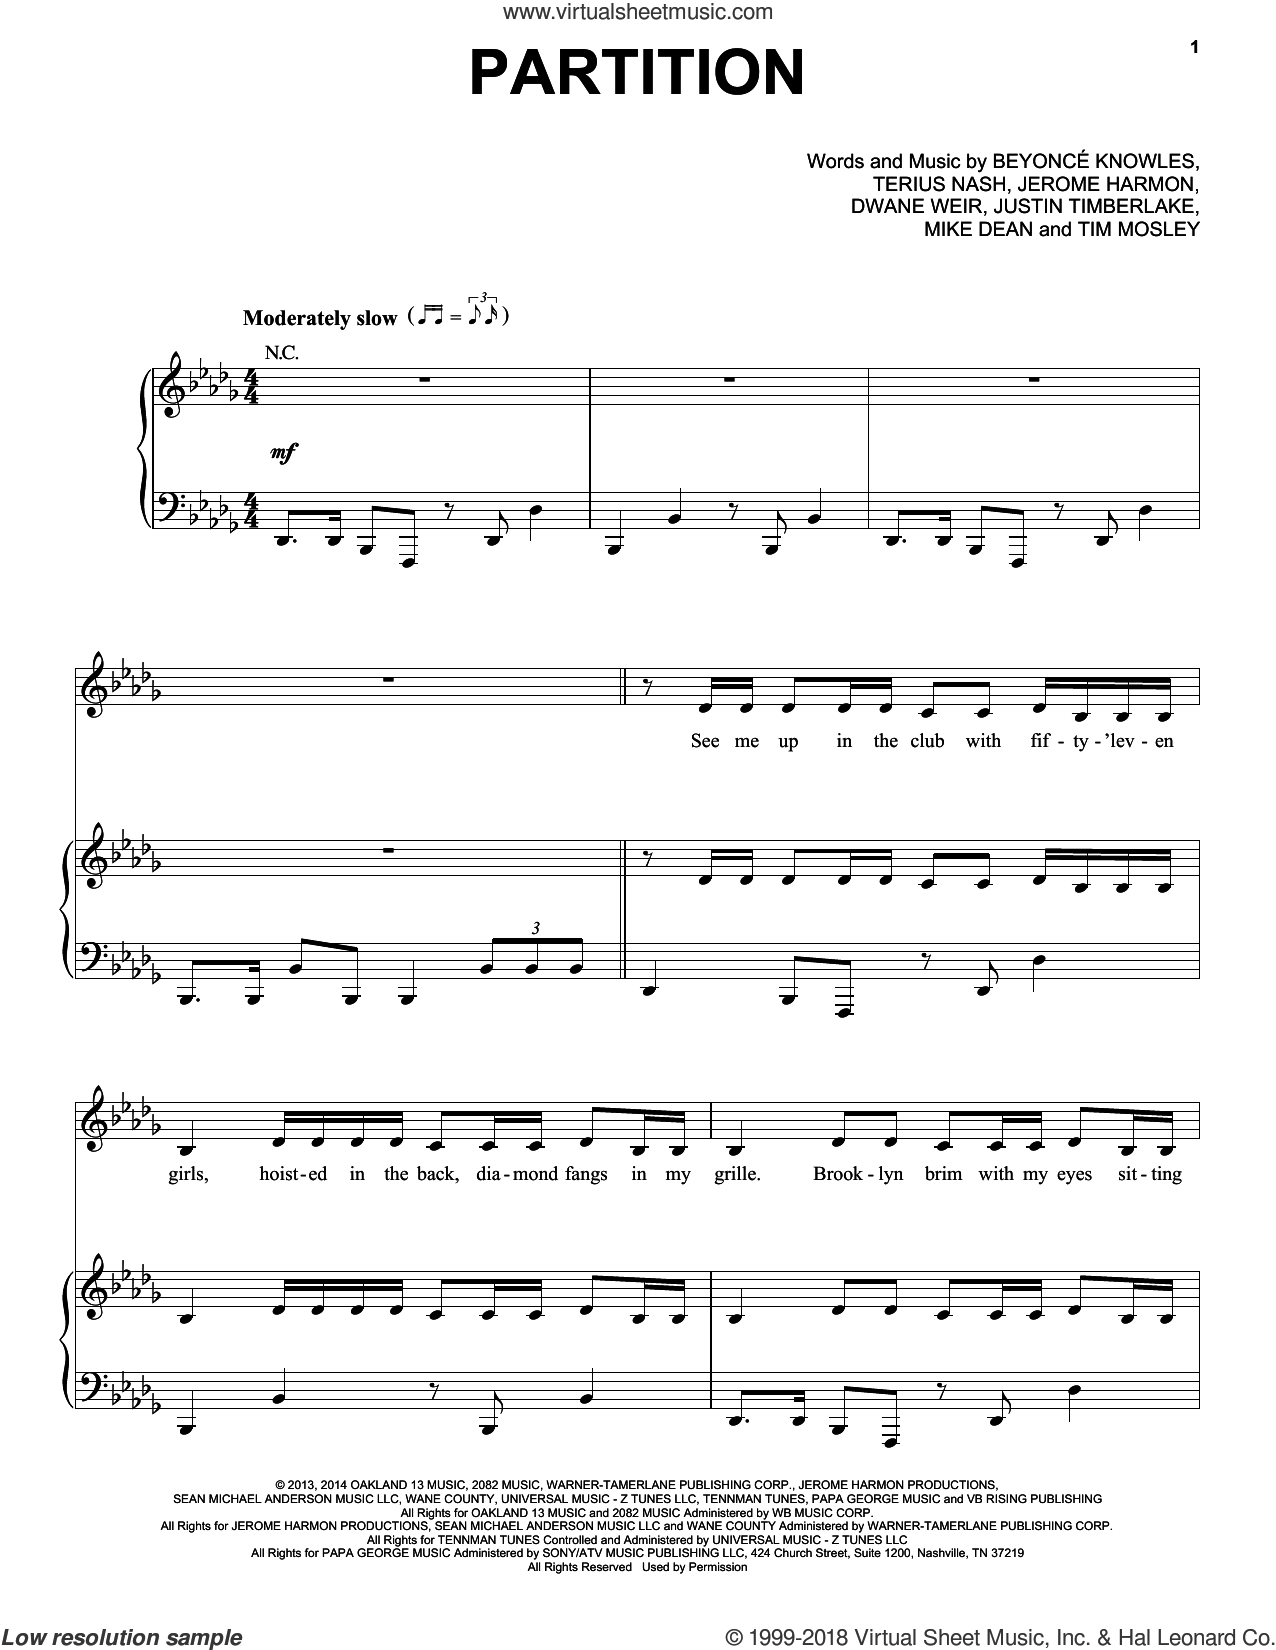 Partition sheet music for voice, piano or guitar by Beyonce, Beyonce Knowles, Dwane Weir, Jermone Harmon, Justin Timberlake, Mike Dean, Terius Nash and Tim Mosley, intermediate skill level